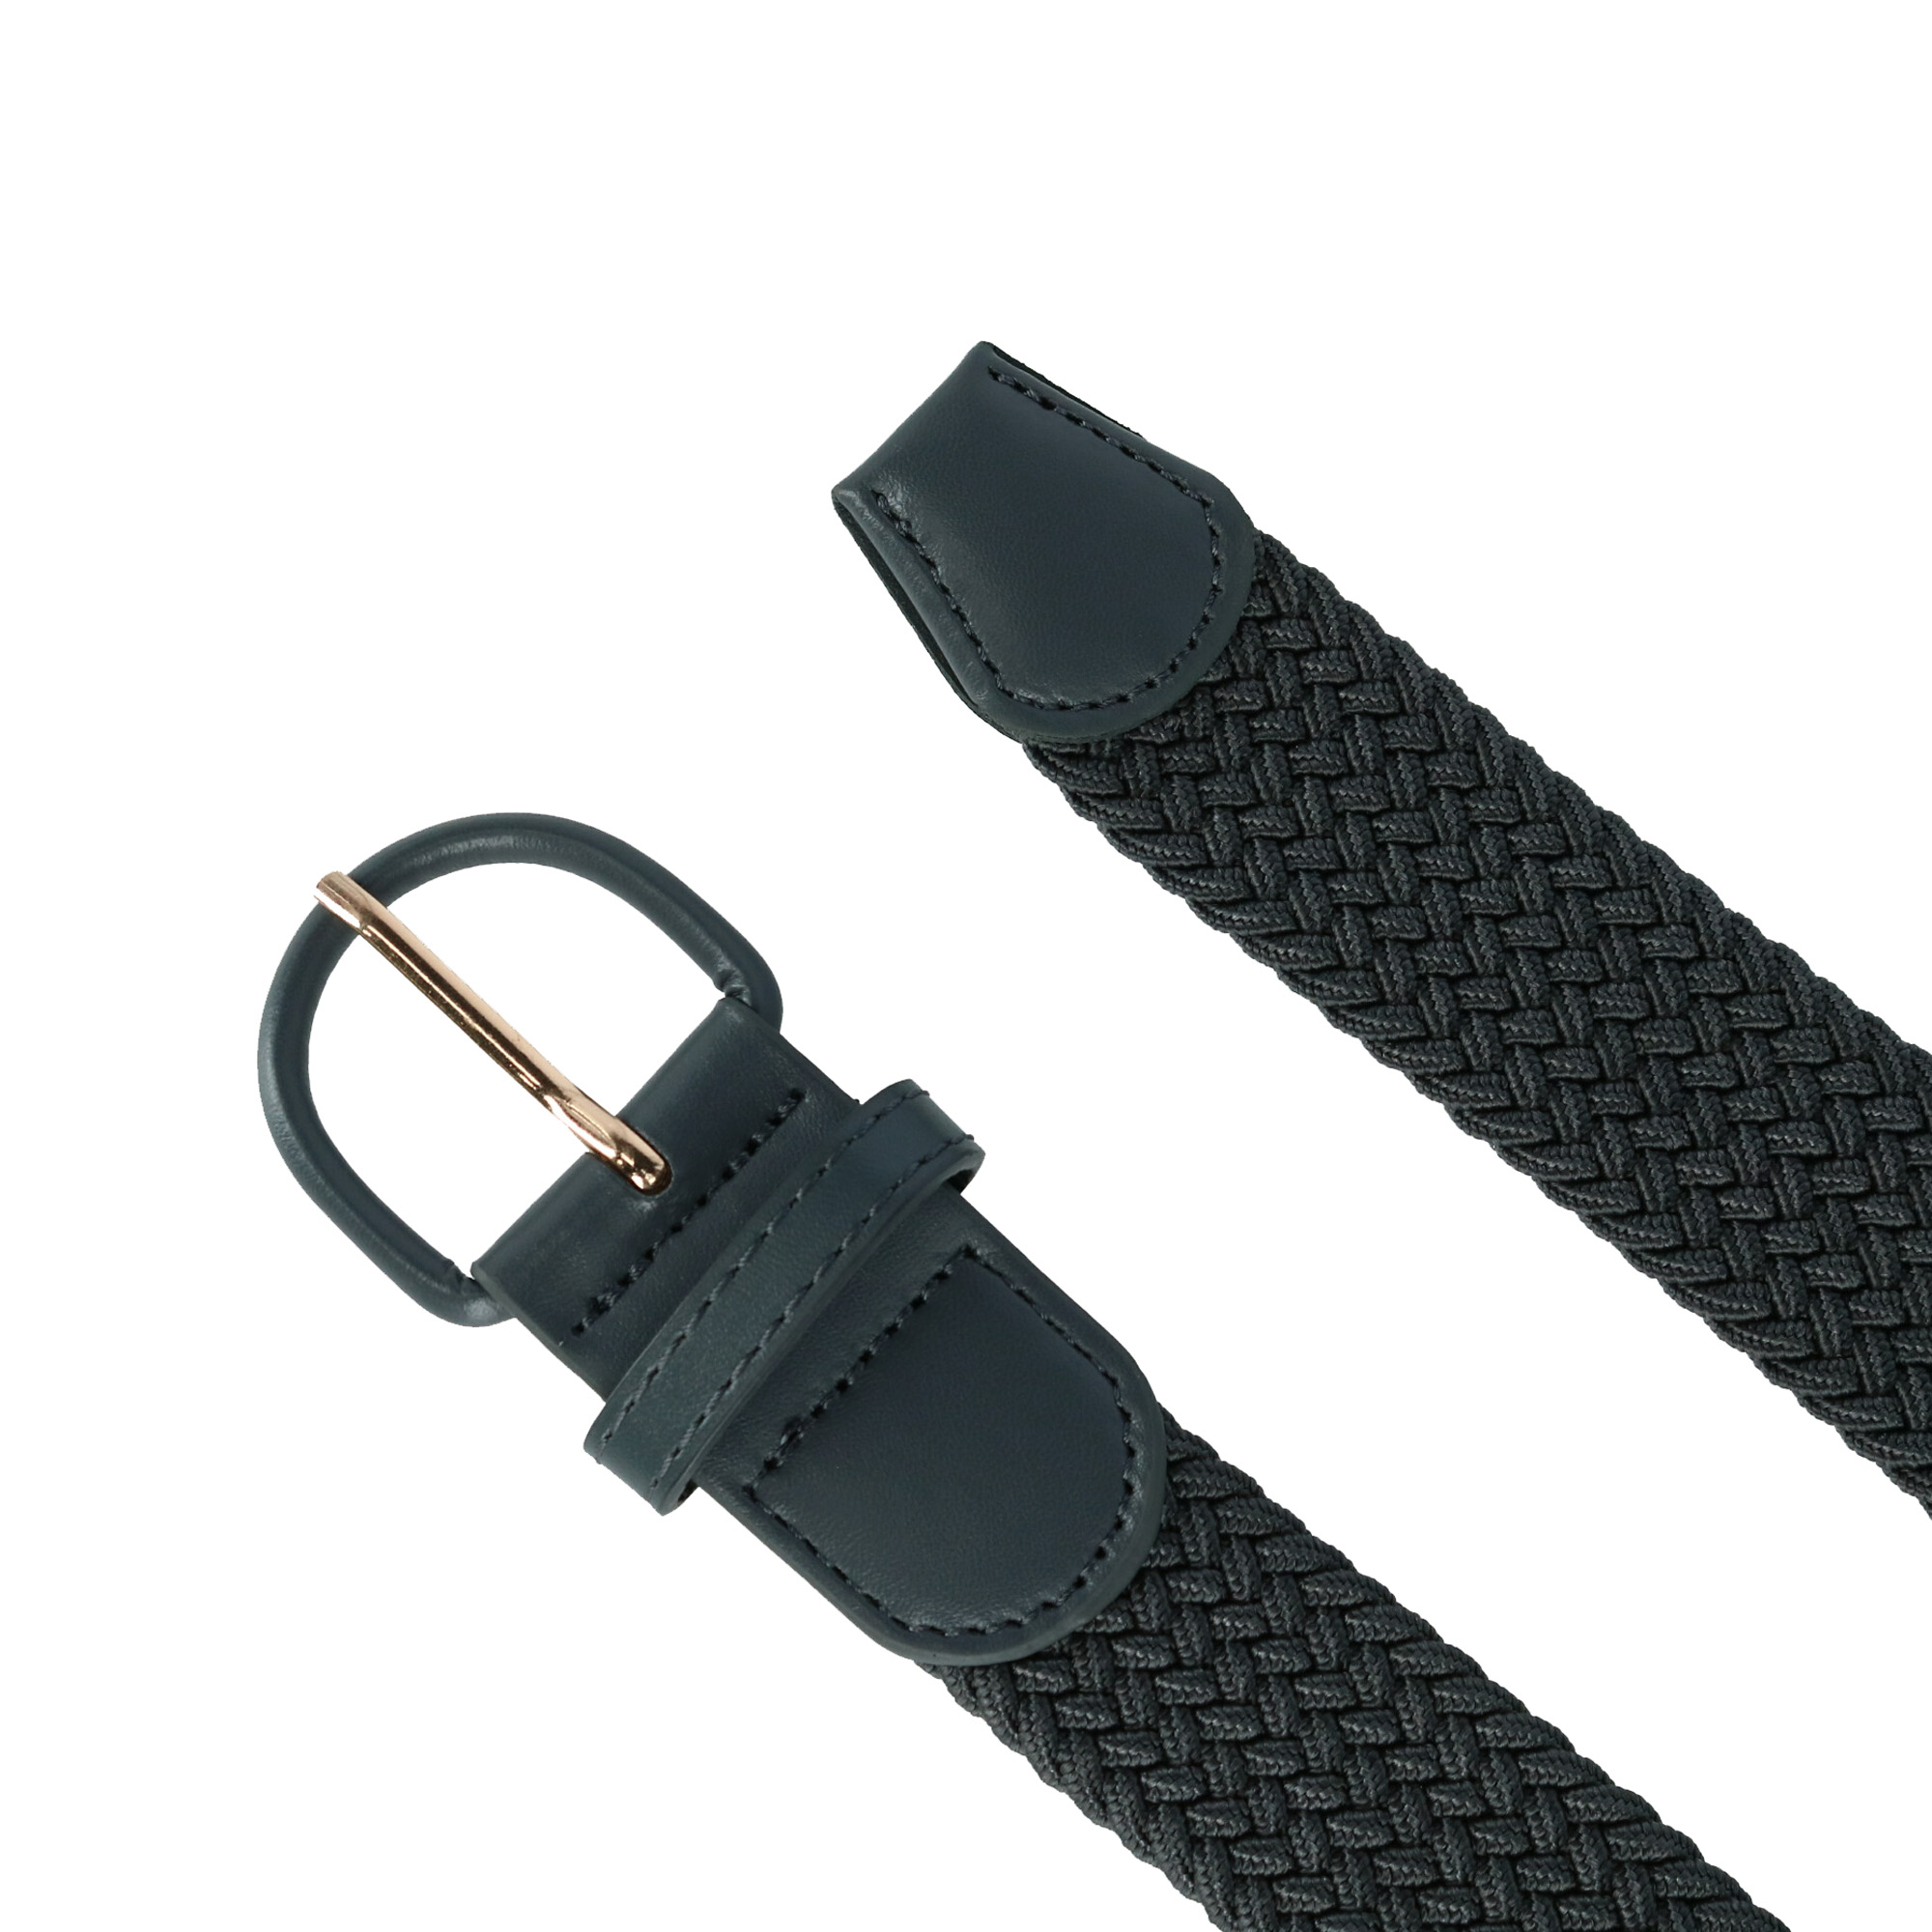 Big /& Tall Available New CTM Men/'s Elastic Braided Belt with Covered Buckle